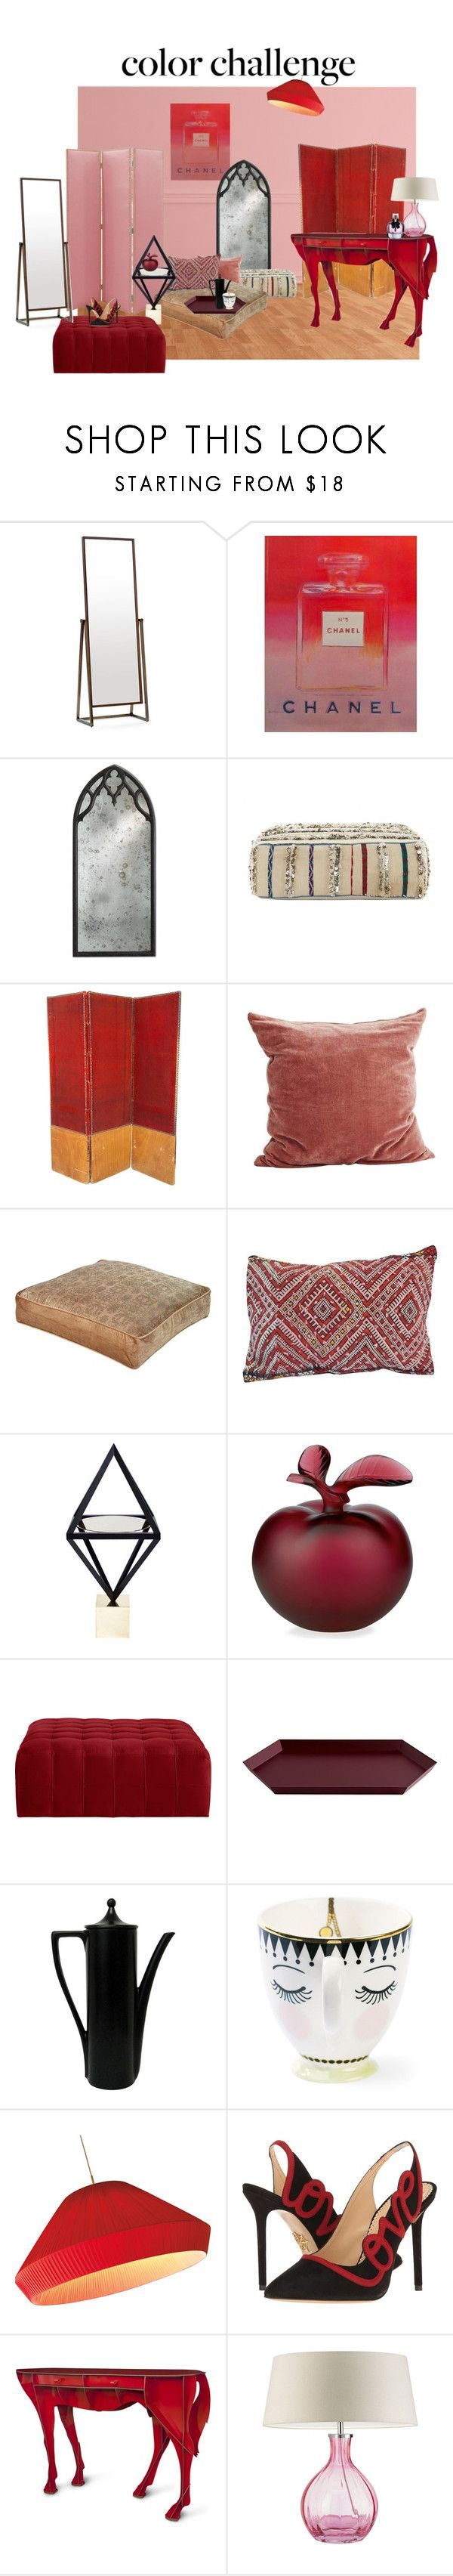 Home decor collage from january 2017 featuring currey company -  Polyvore_color Challenge Pink And Red By Cloibne Liked On Polyvore Featuring Interior